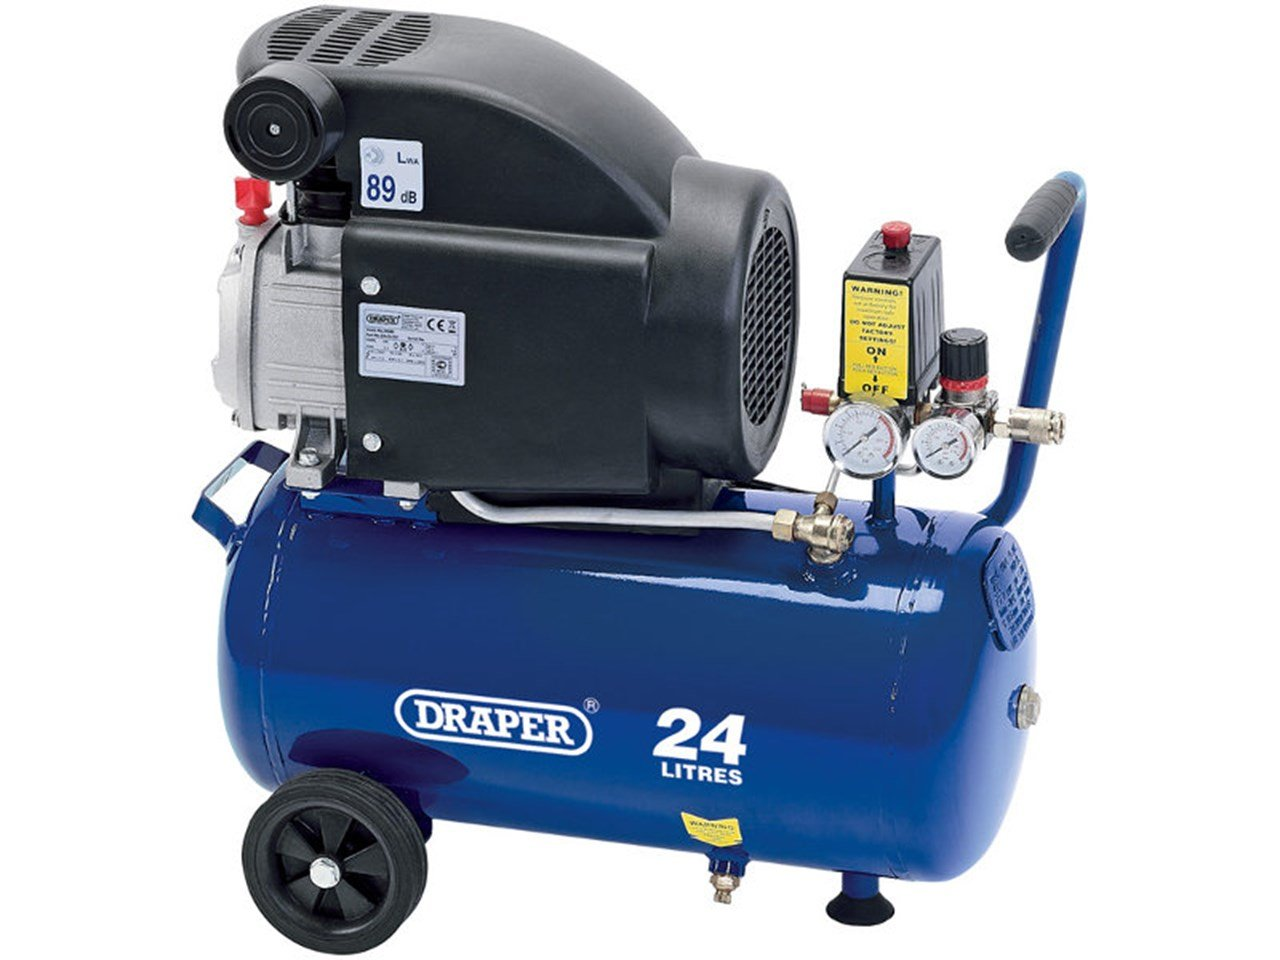 Draper DA50/207 50L 230V 2.0HP Air Compressor 230 V  50 L Draper Tools Limited